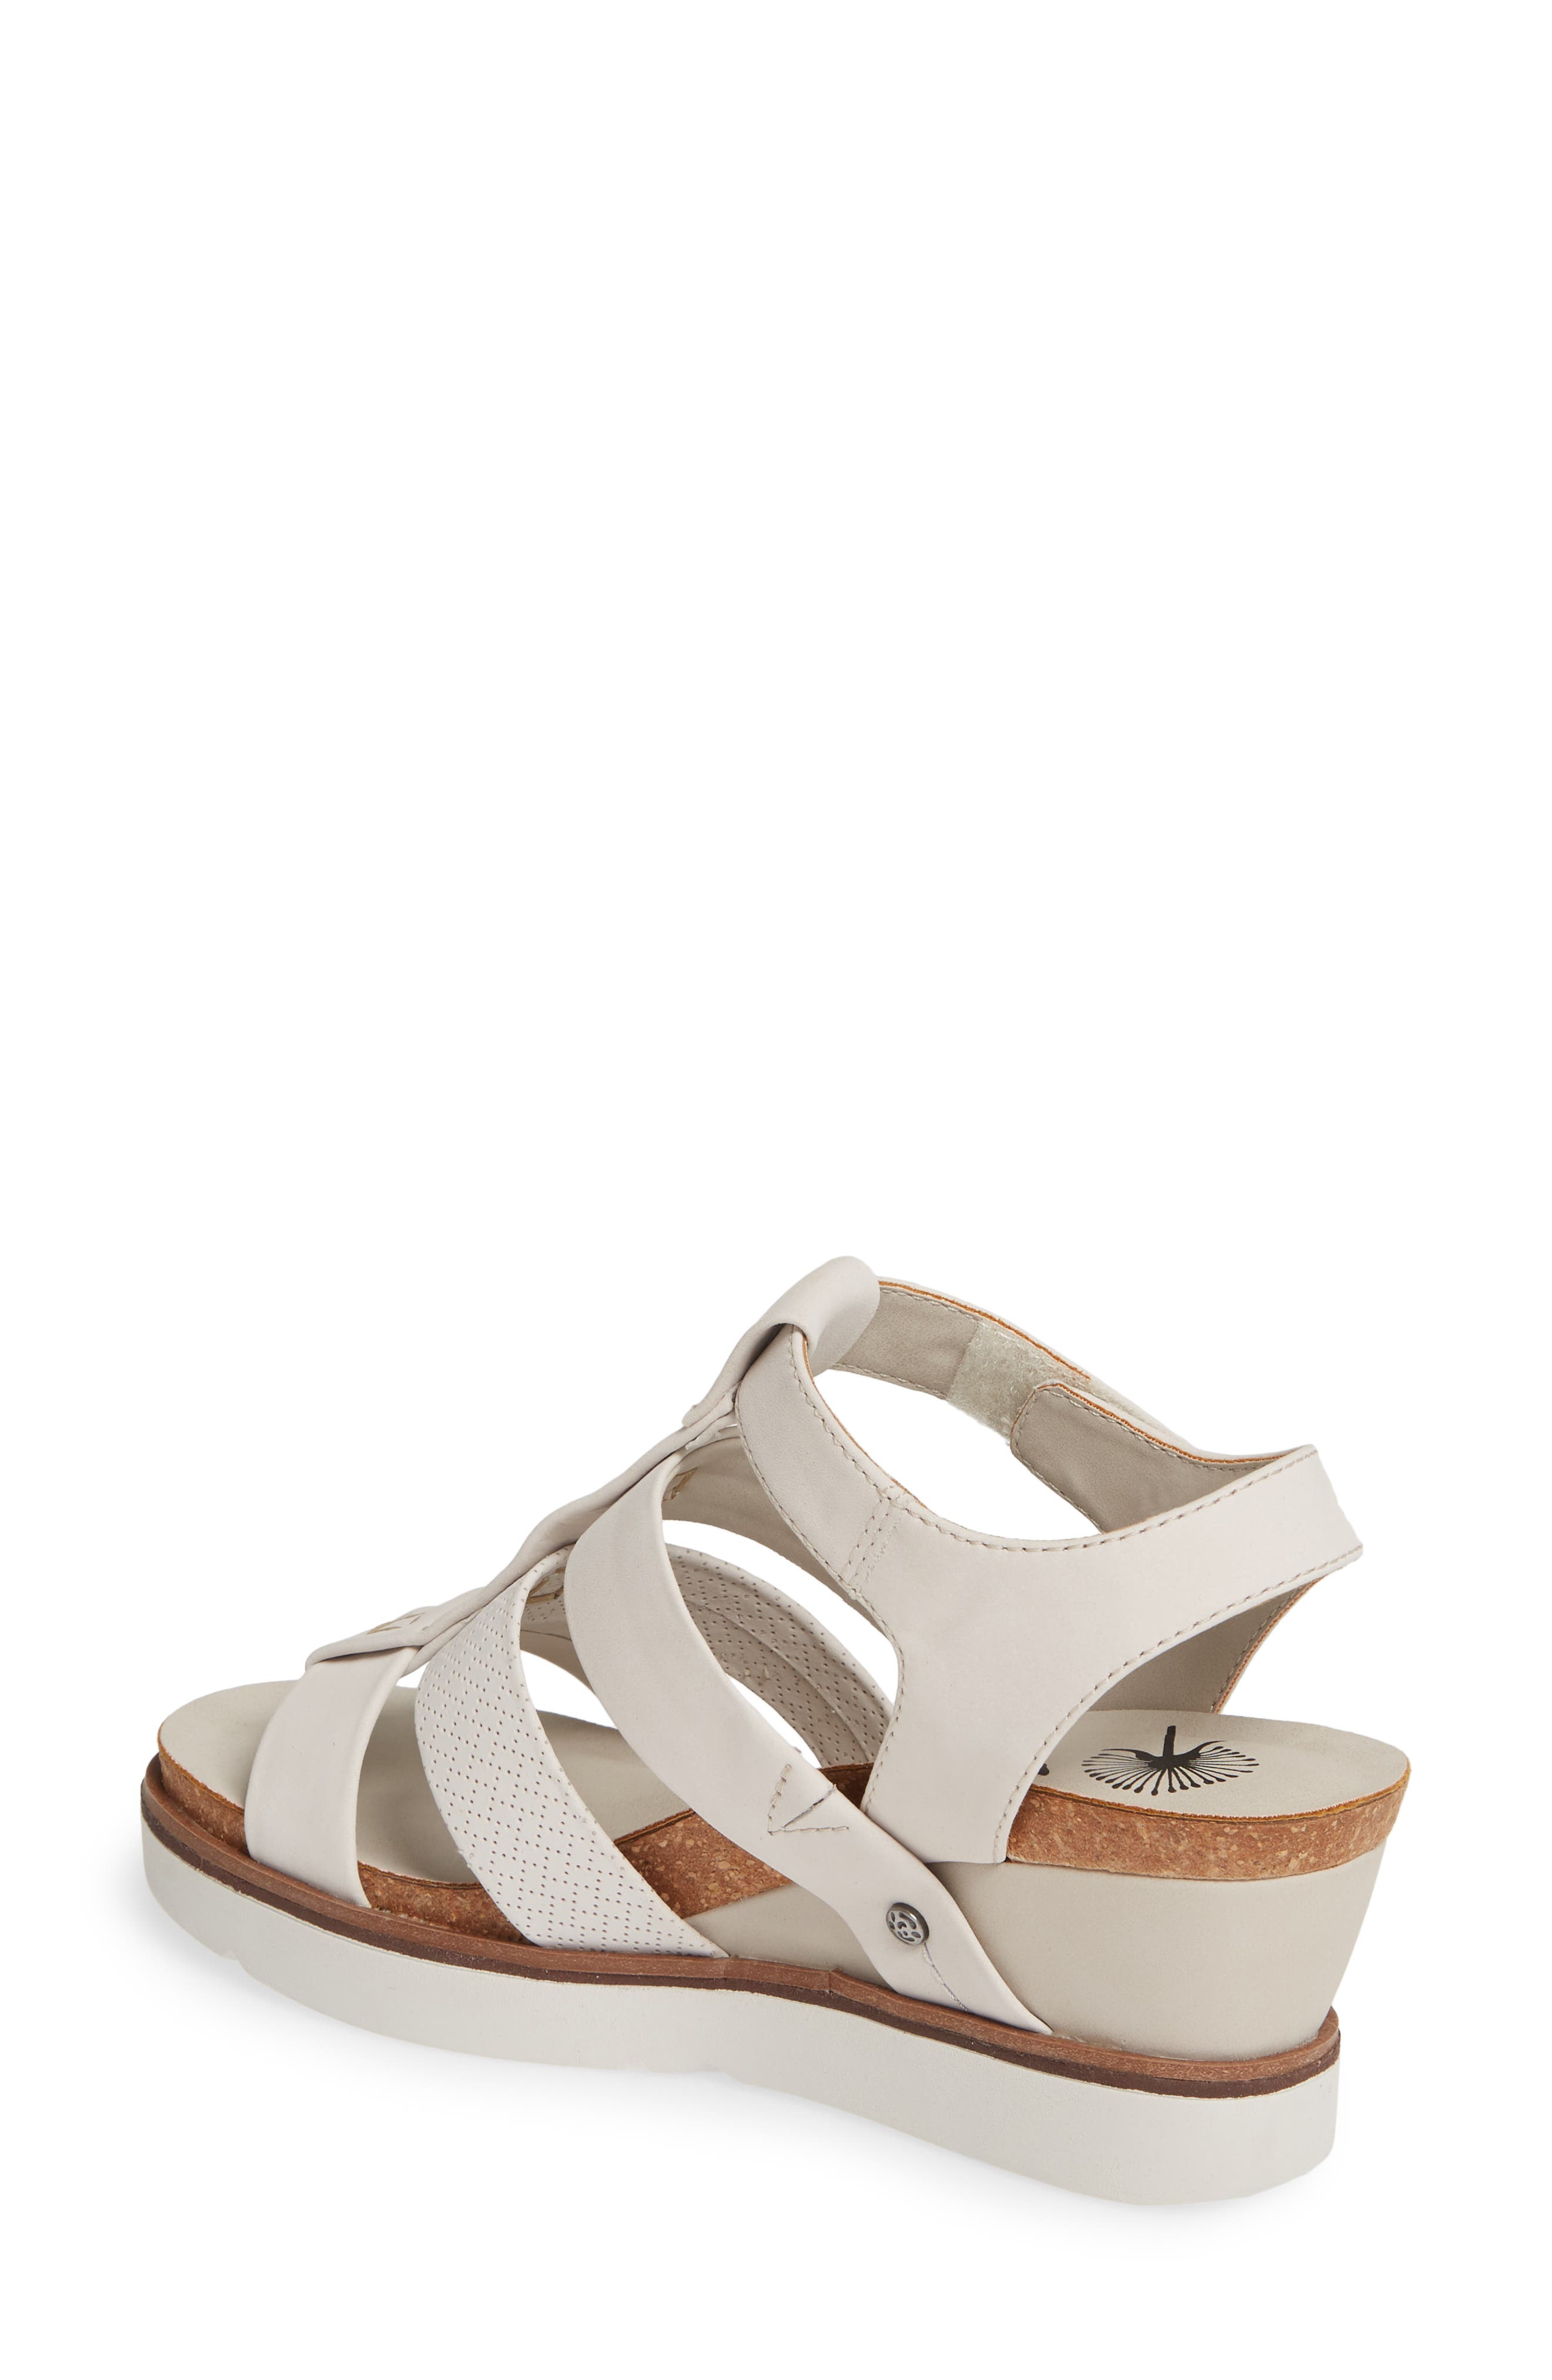 New Moon Wedge Sandal,                             Alternate thumbnail 2, color,                             DOVE GREY LEATHER